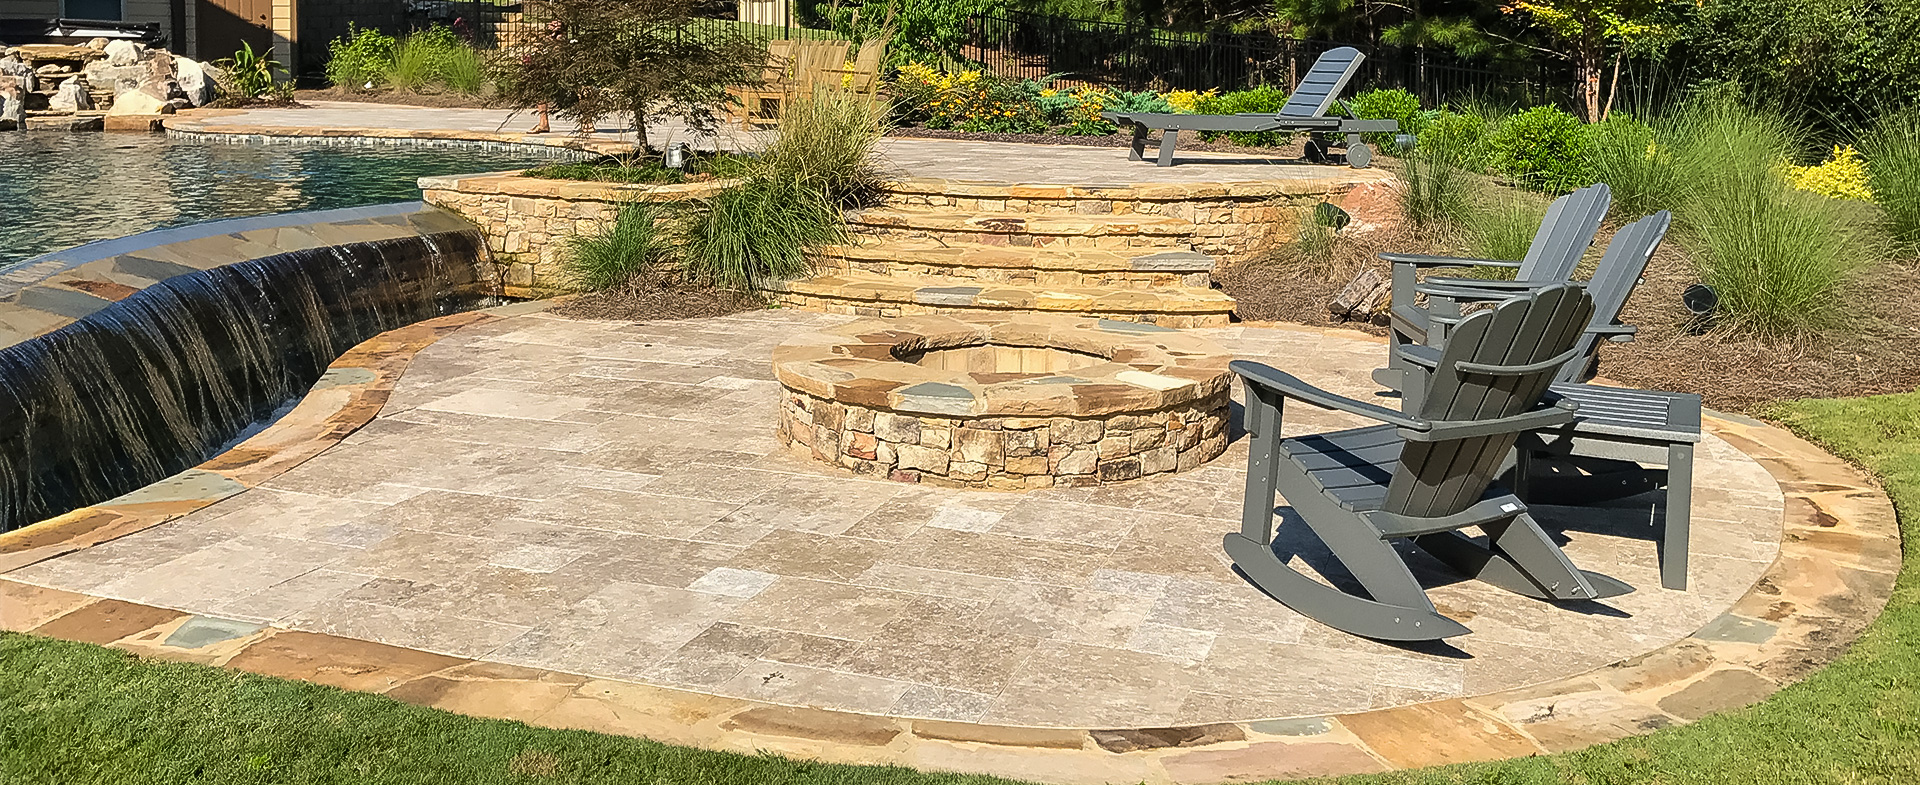 Home - Southern Pools & Outdoor Living on Southern Pools And Outdoor Living id=26136